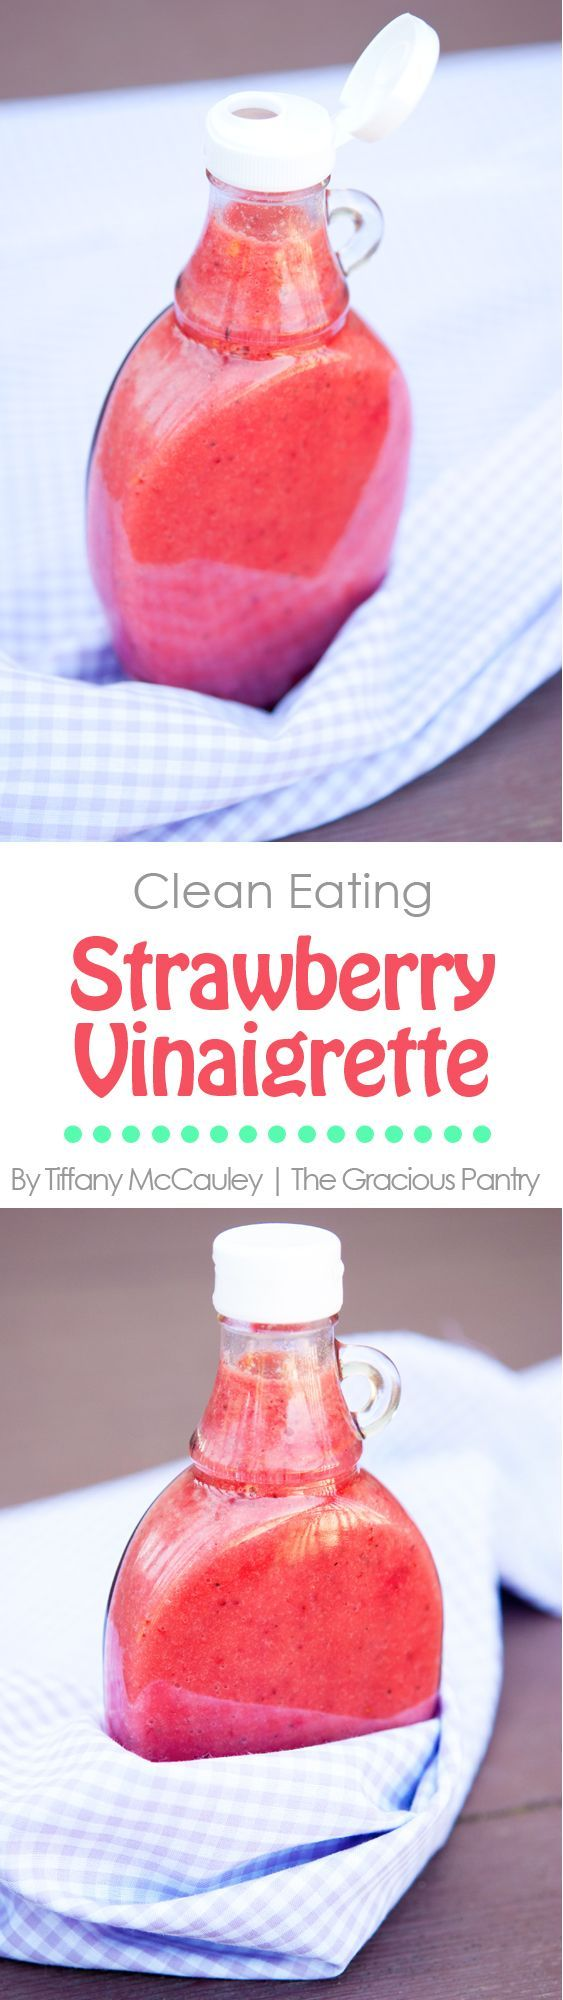 Clean Eating Strawberry Vinaigrette. An amazing addition to almost any clean eating salad! Light, fresh and bursting with flavor! ~ http://www.thegraciouspantry.stfi.re